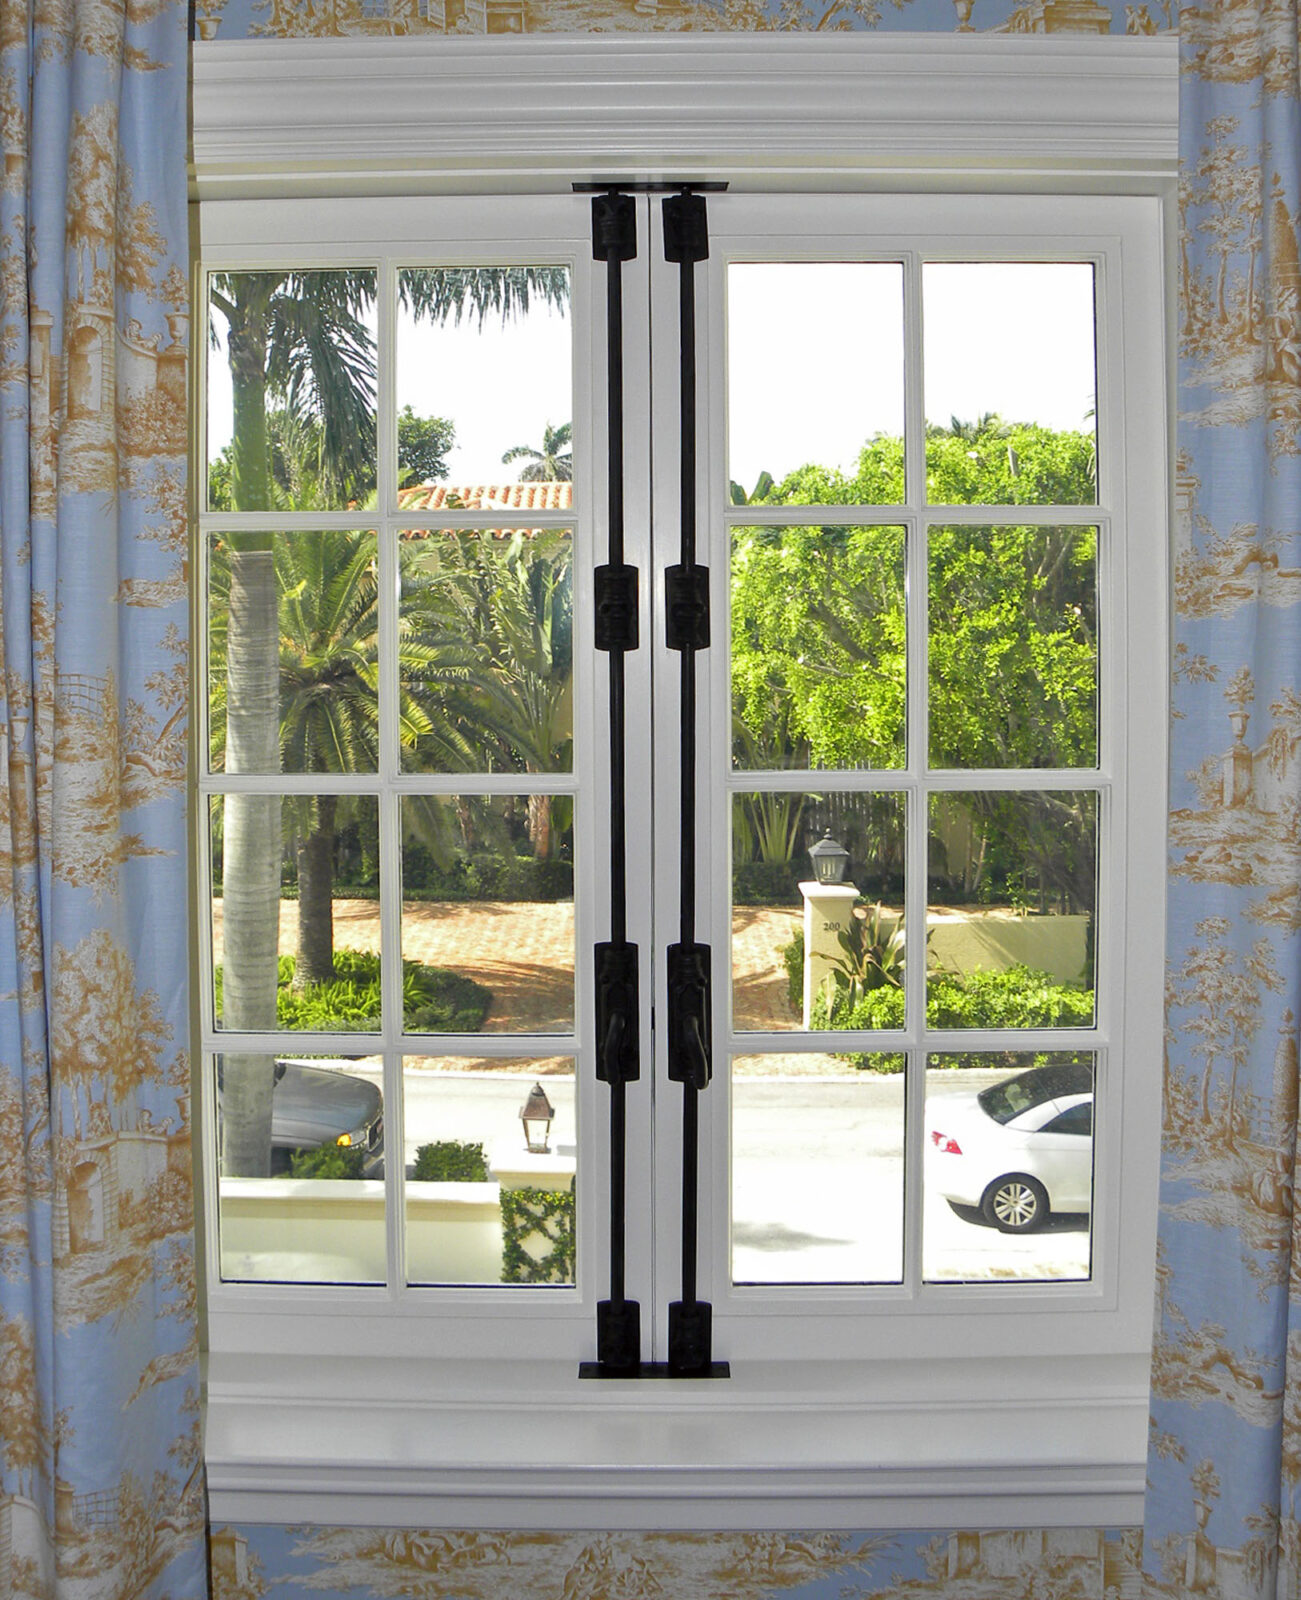 EL VENADO PALM BEACH WINDOW